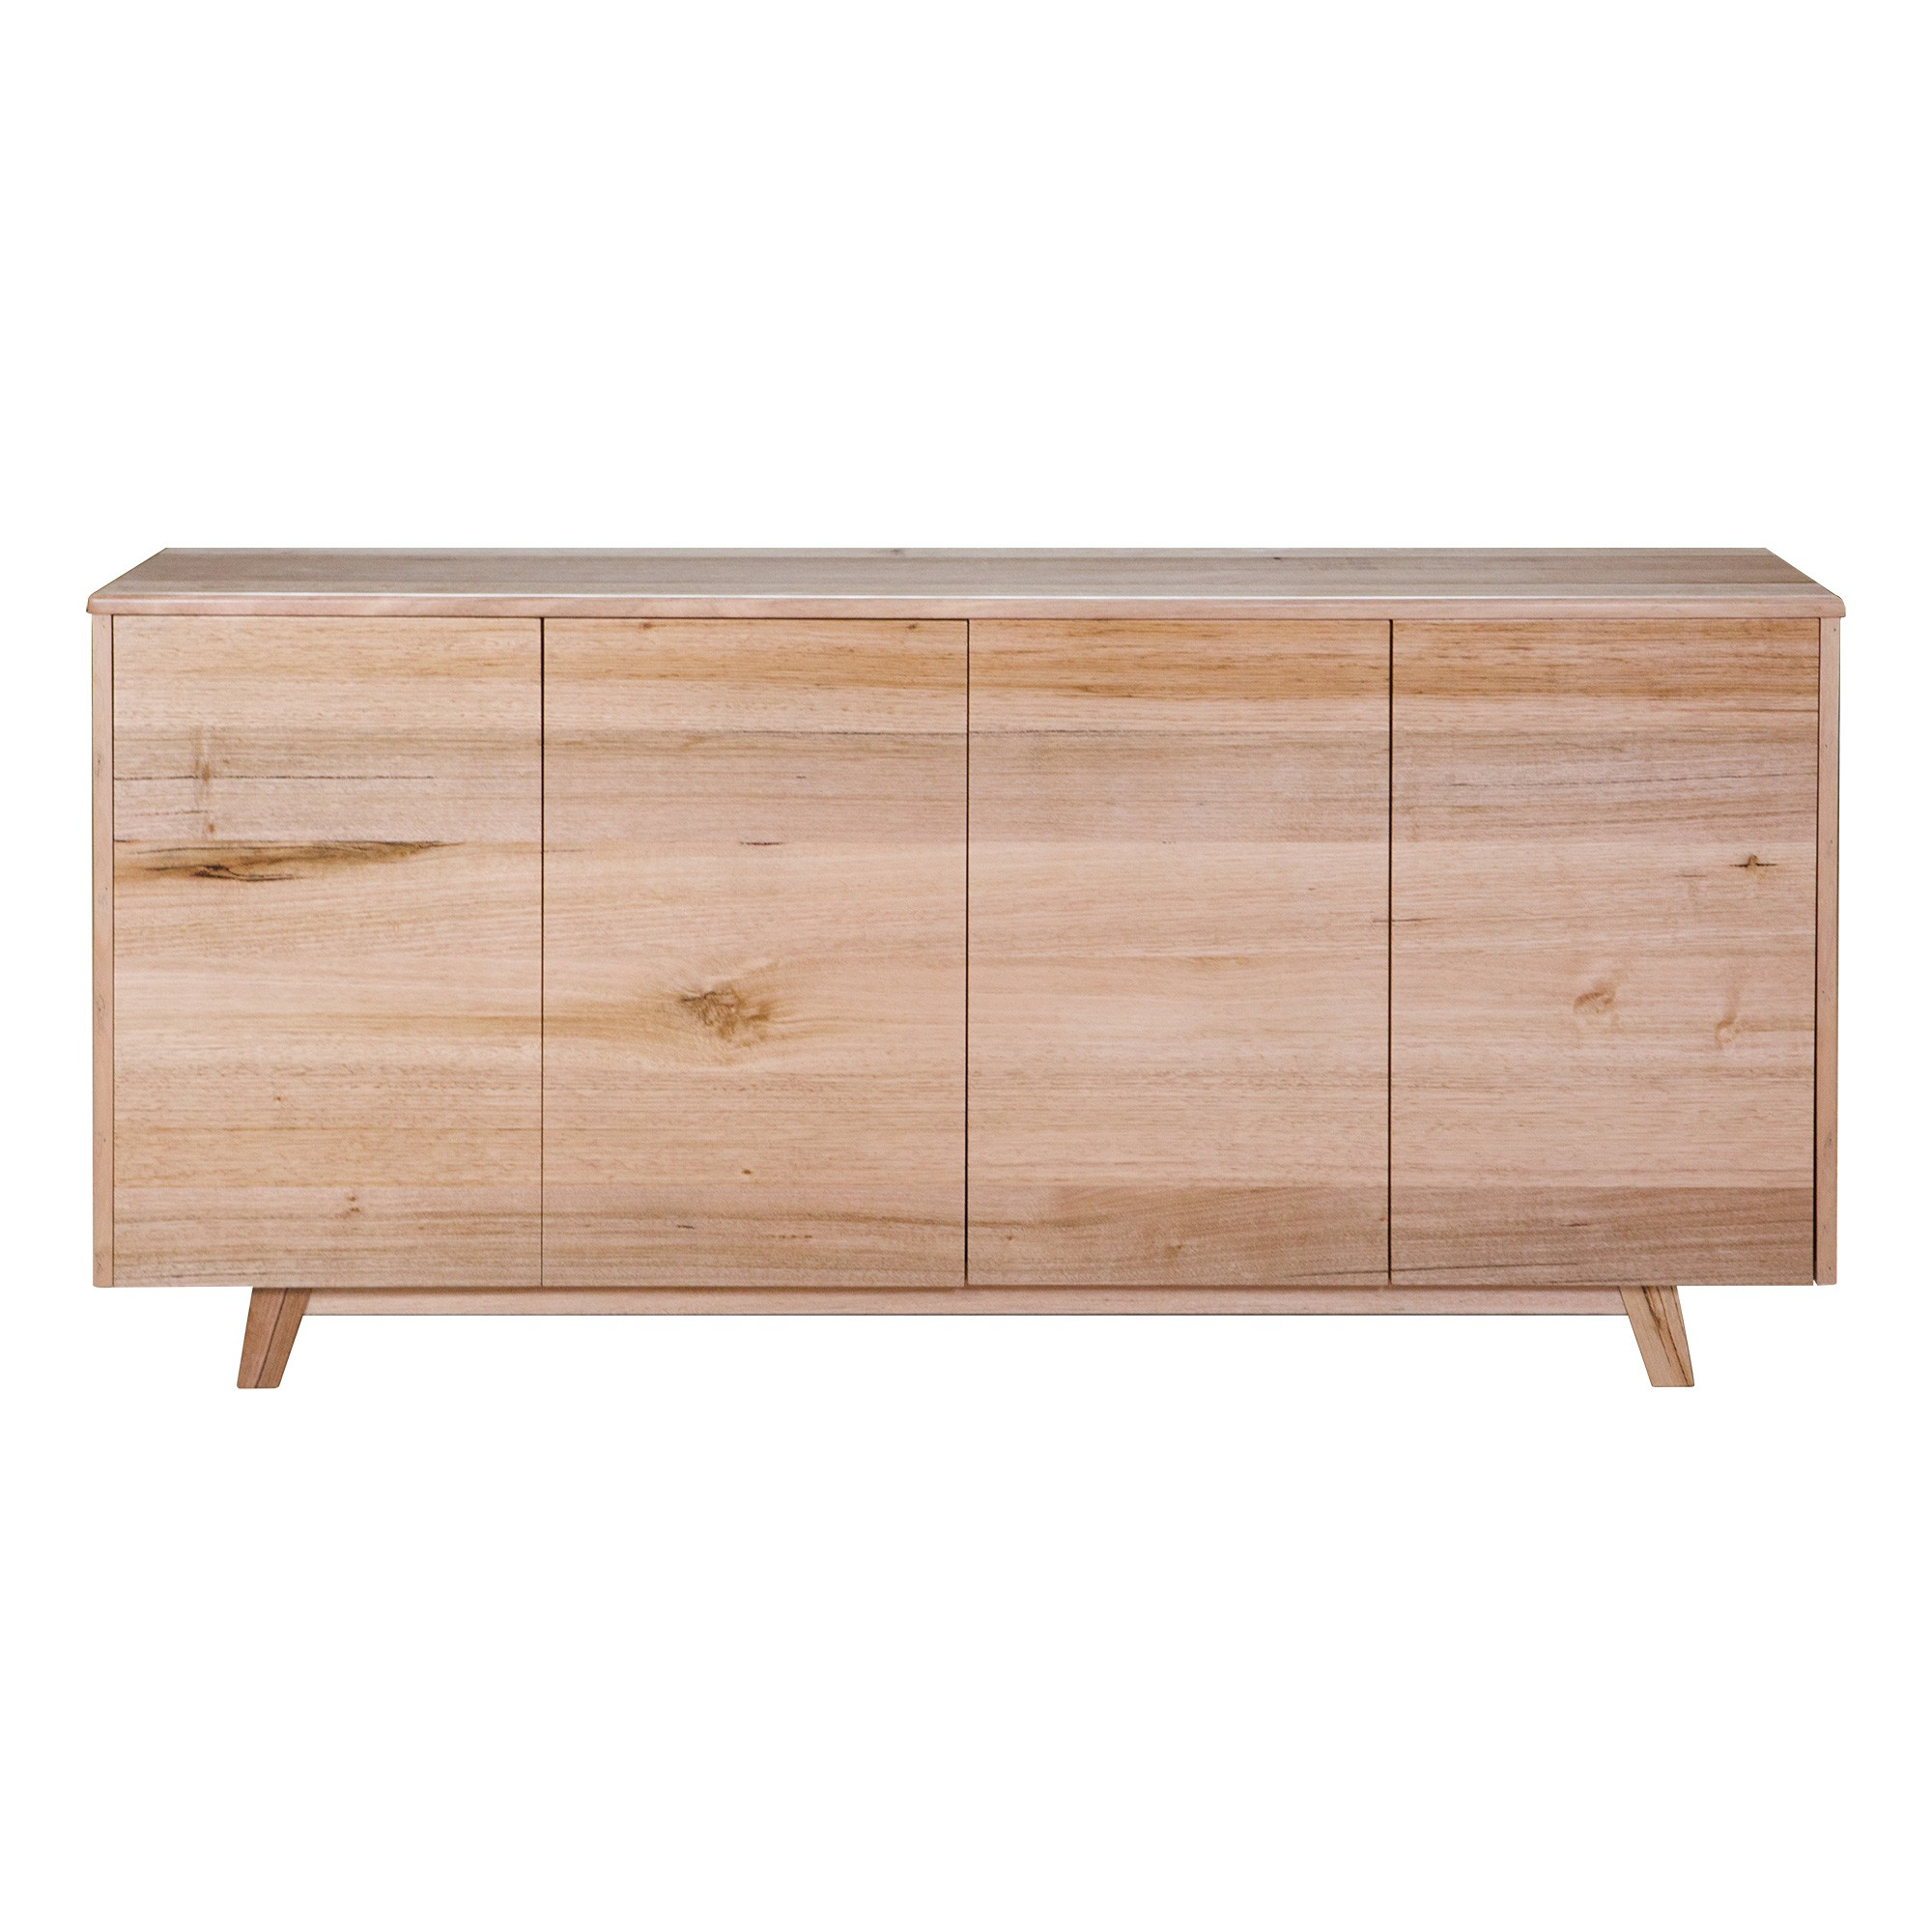 Wade Tasmanian Oak Timber 4 Drawer Buffet Table, 181cm